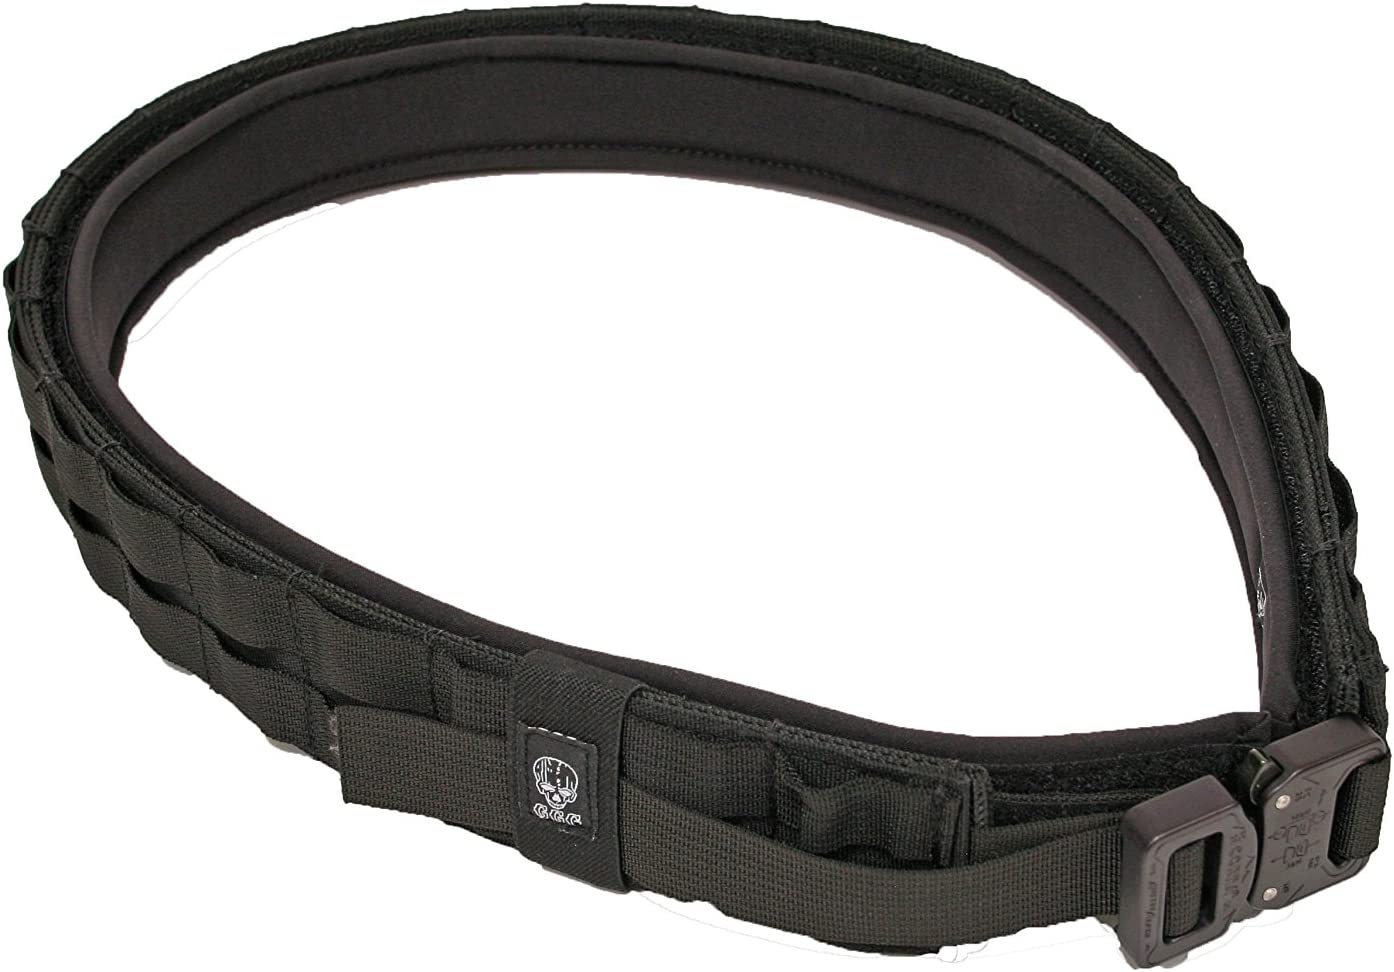 Grey Ghost Gear 7014-2 UGF Battle Belt with Padded Inner, Black, X-Large